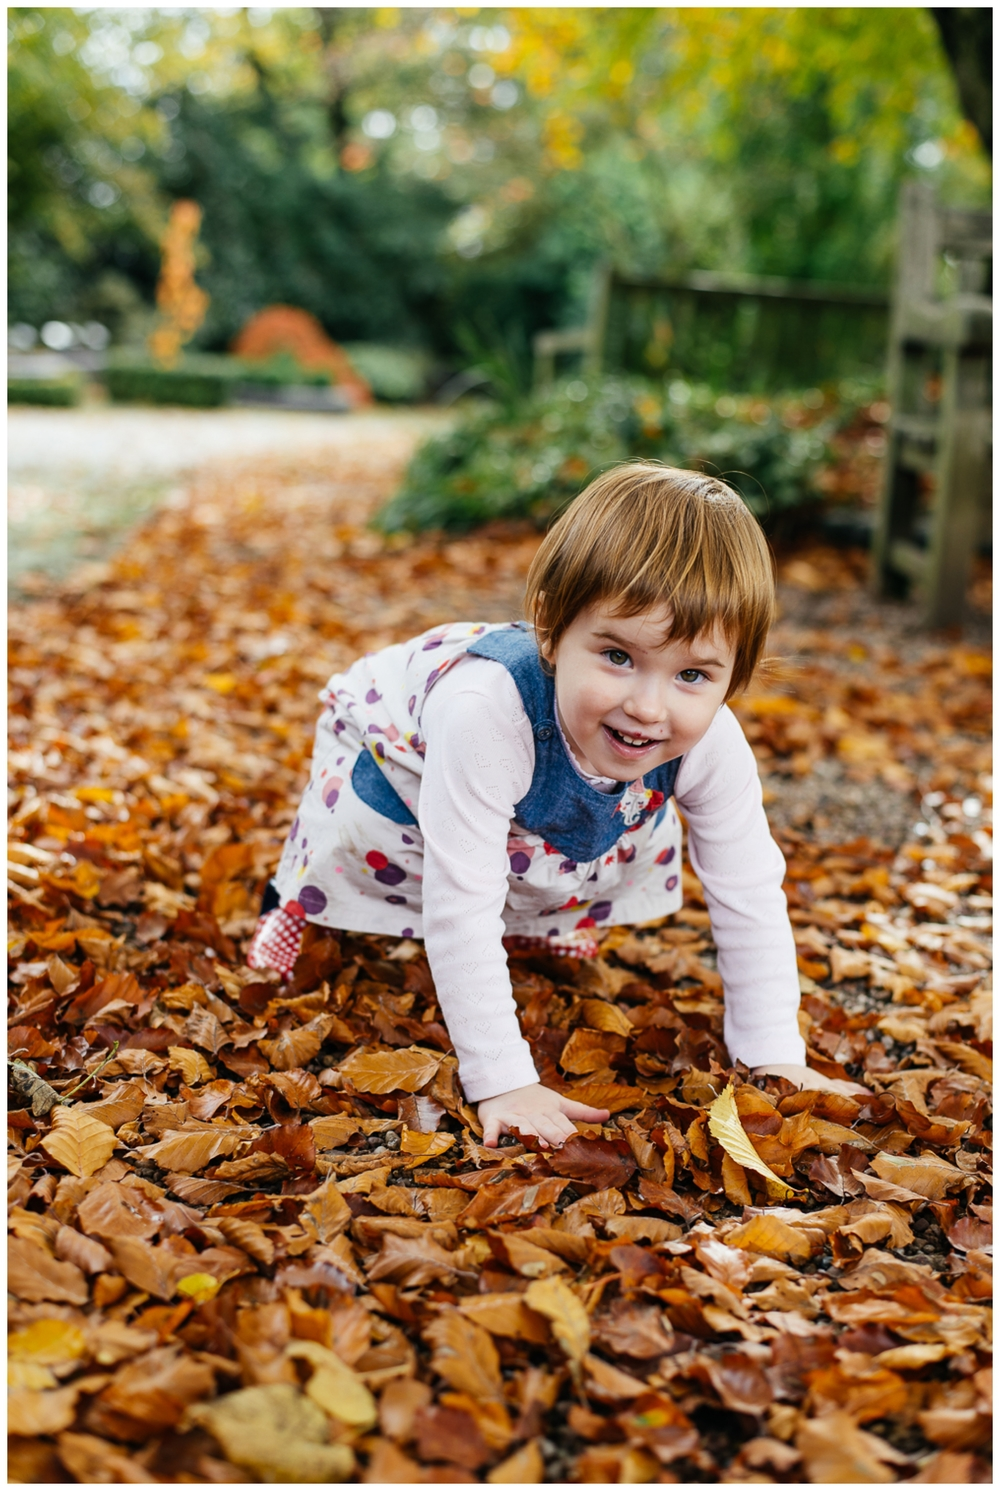 Autumn-family-portraits-birmingham-photographer_0022.jpg